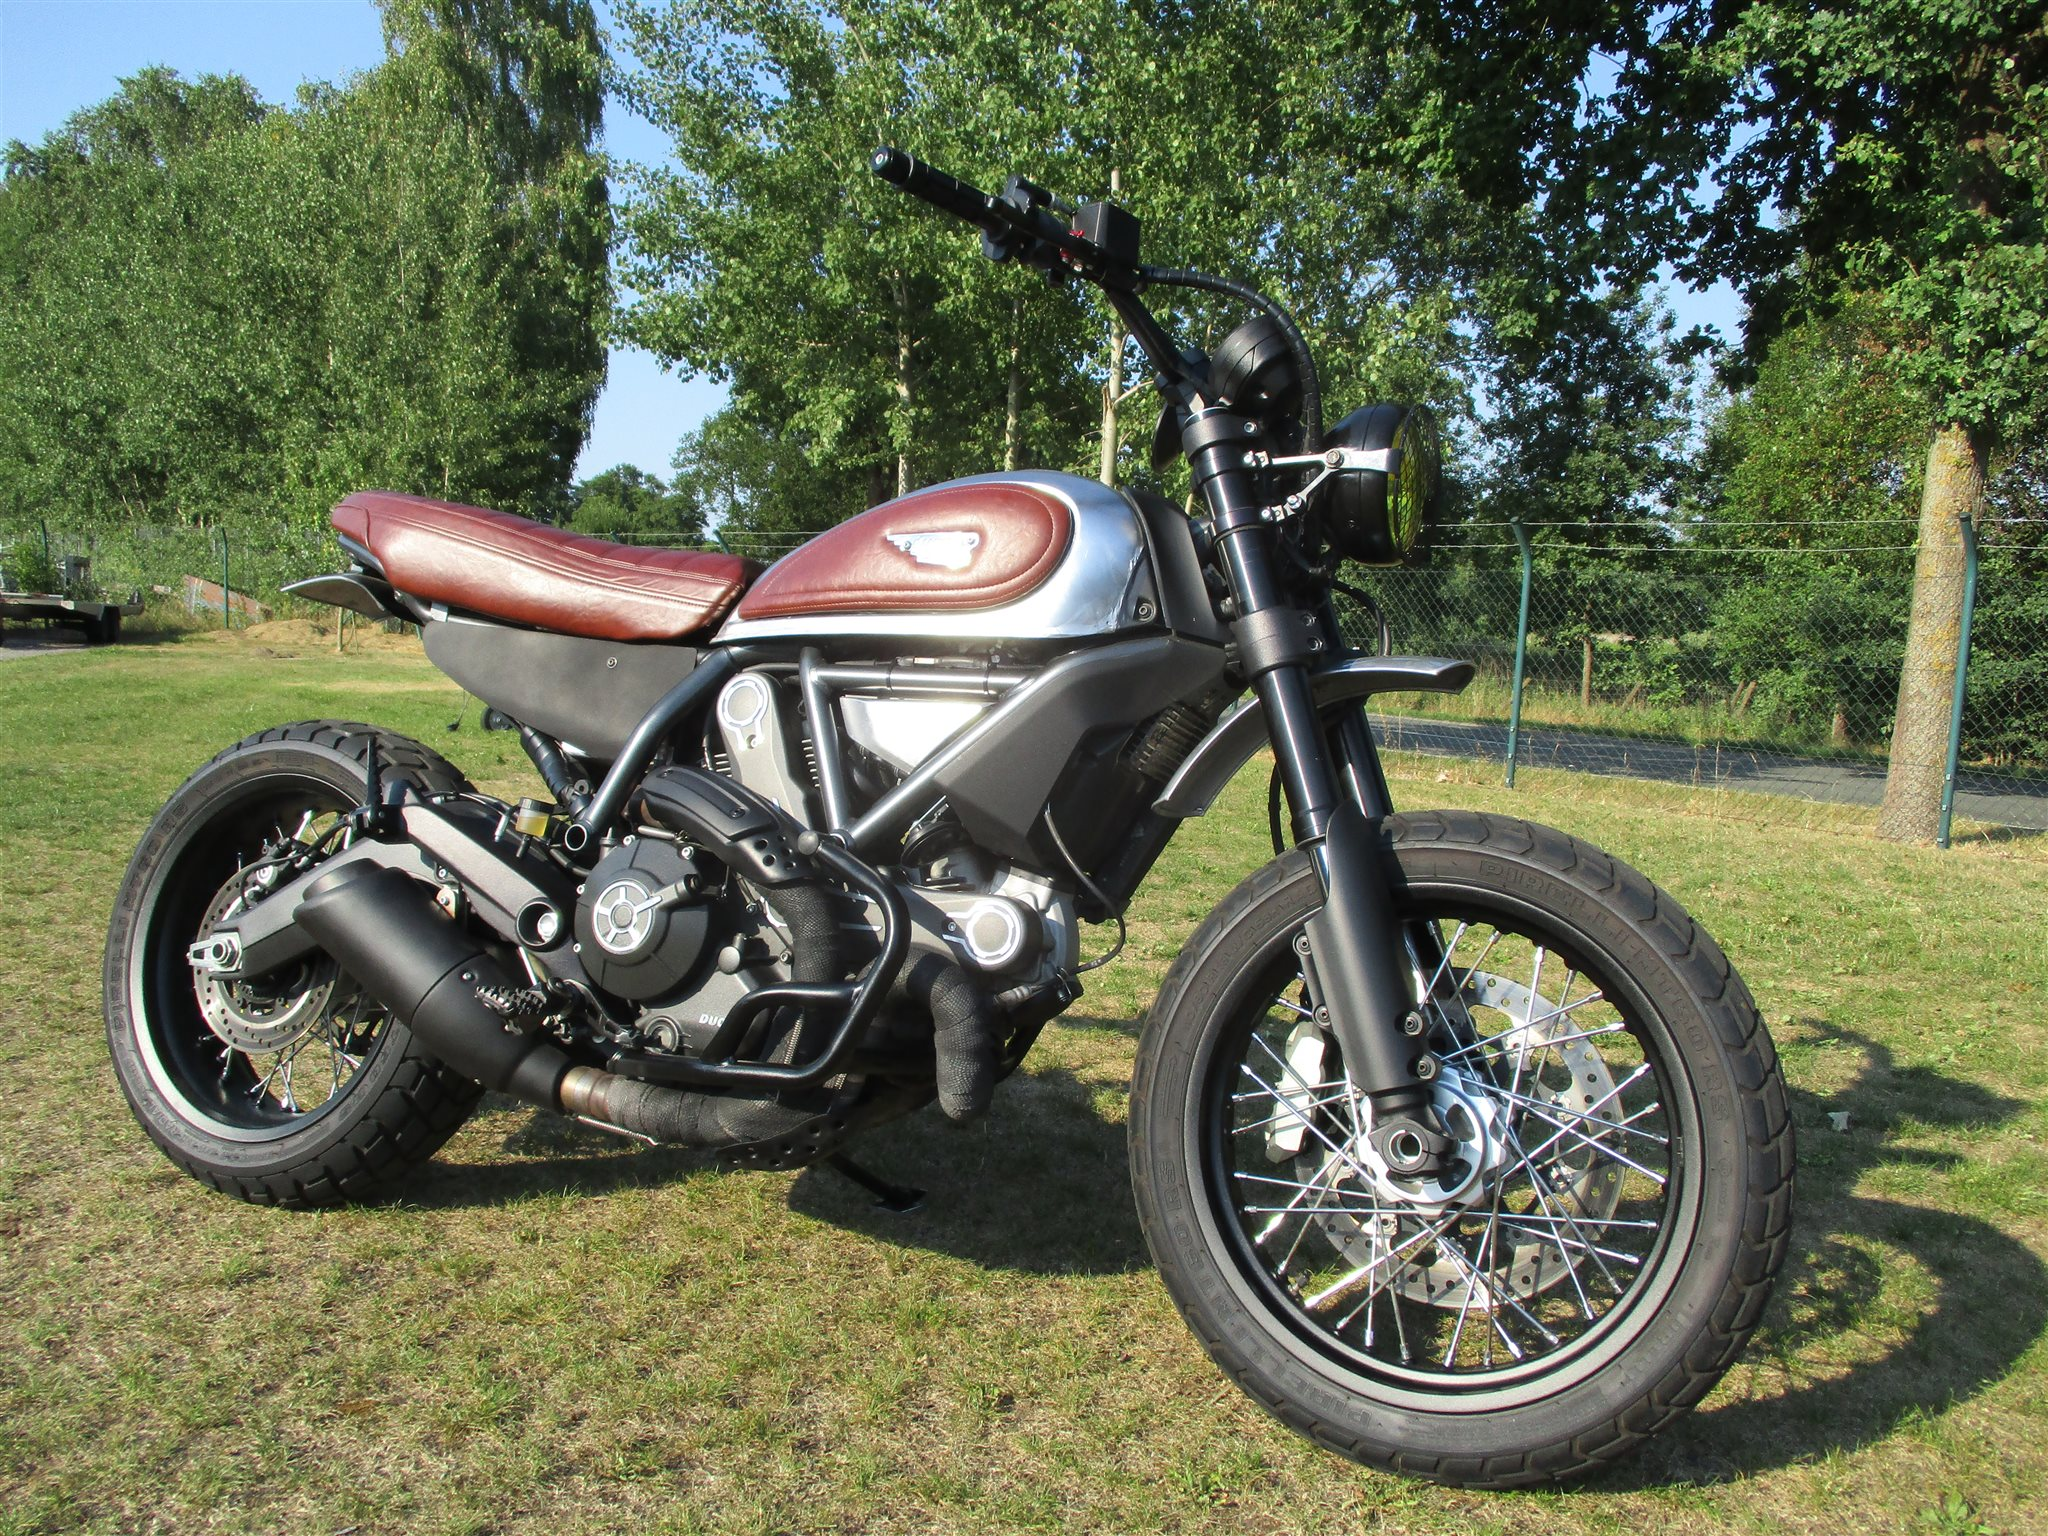 umgebautes motorrad ducati scrambler urban enduro von team. Black Bedroom Furniture Sets. Home Design Ideas